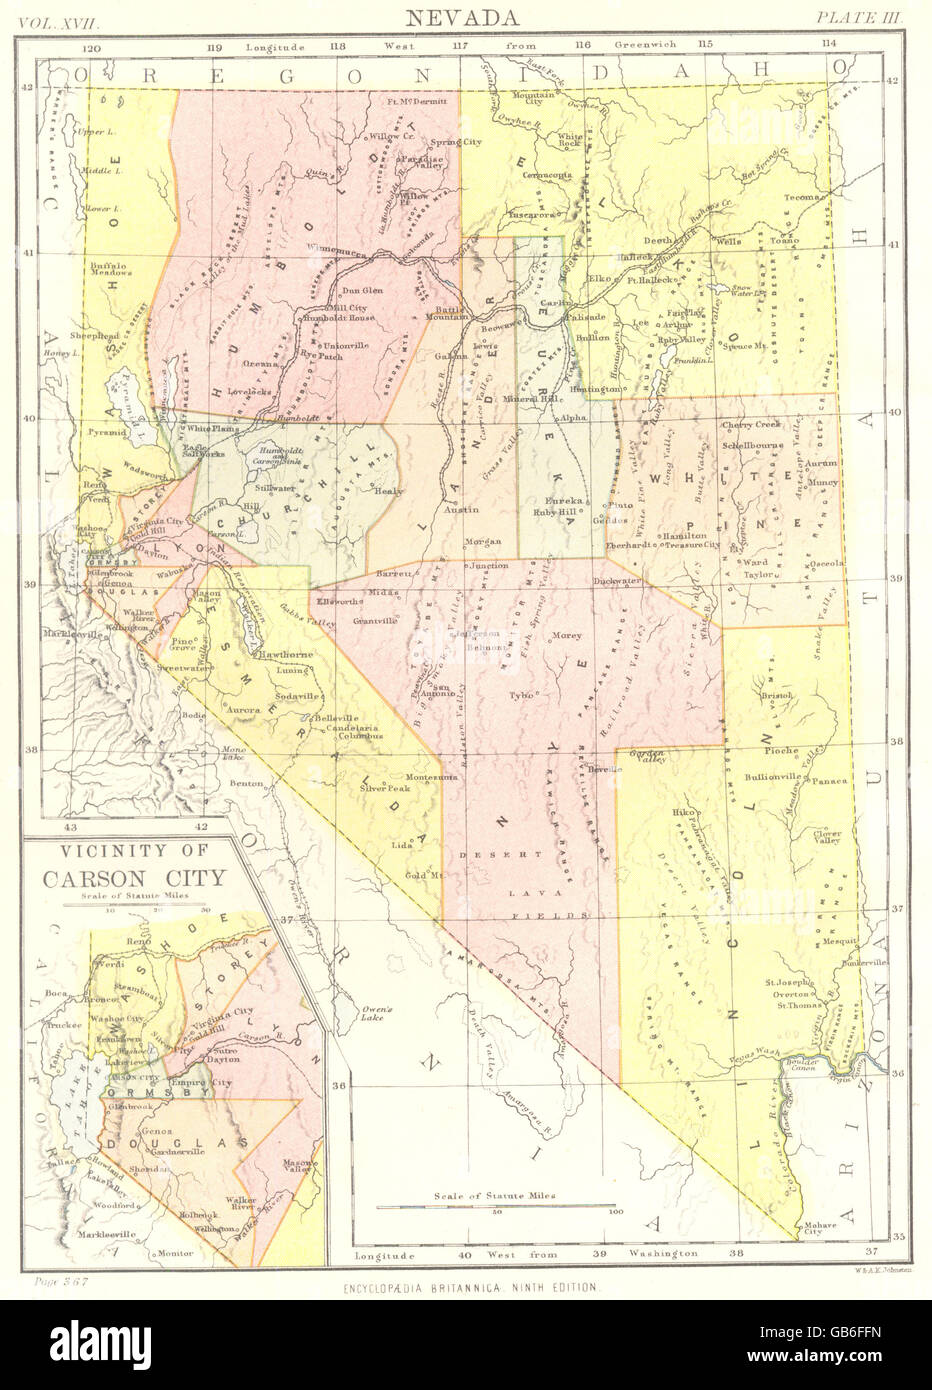 Nevada State Map Showing Counties Inset Carson City Britannica 9th